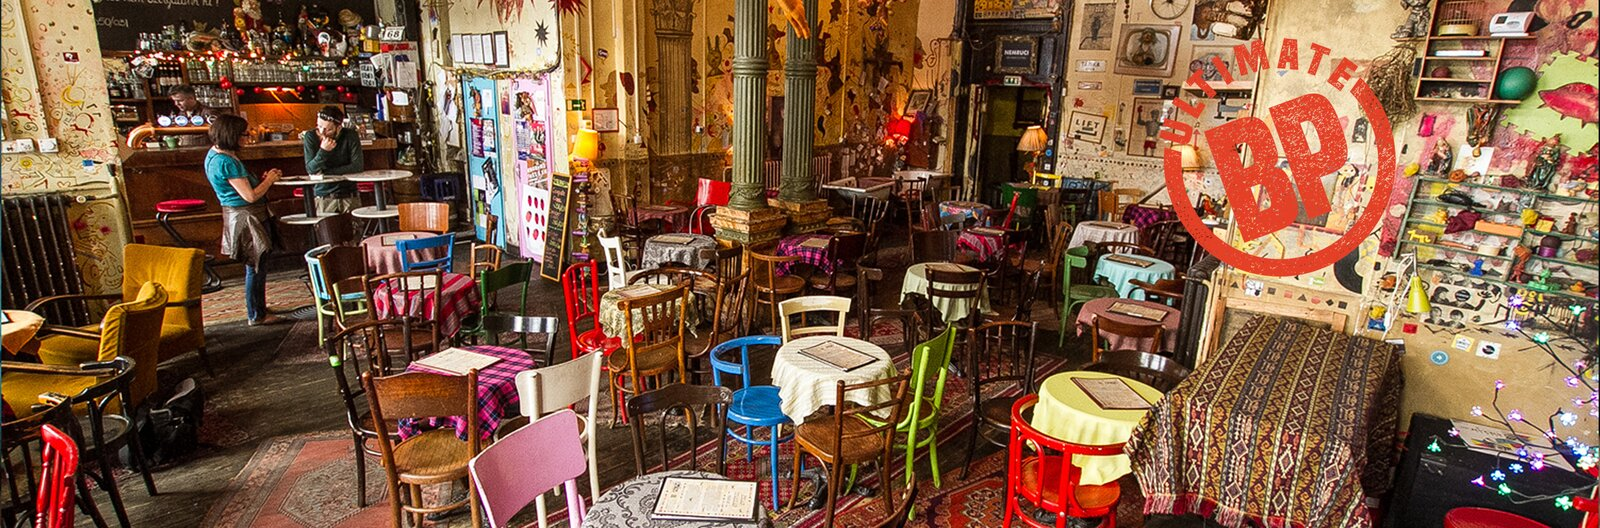 Ultimate Budapest: the best ruin bars in town